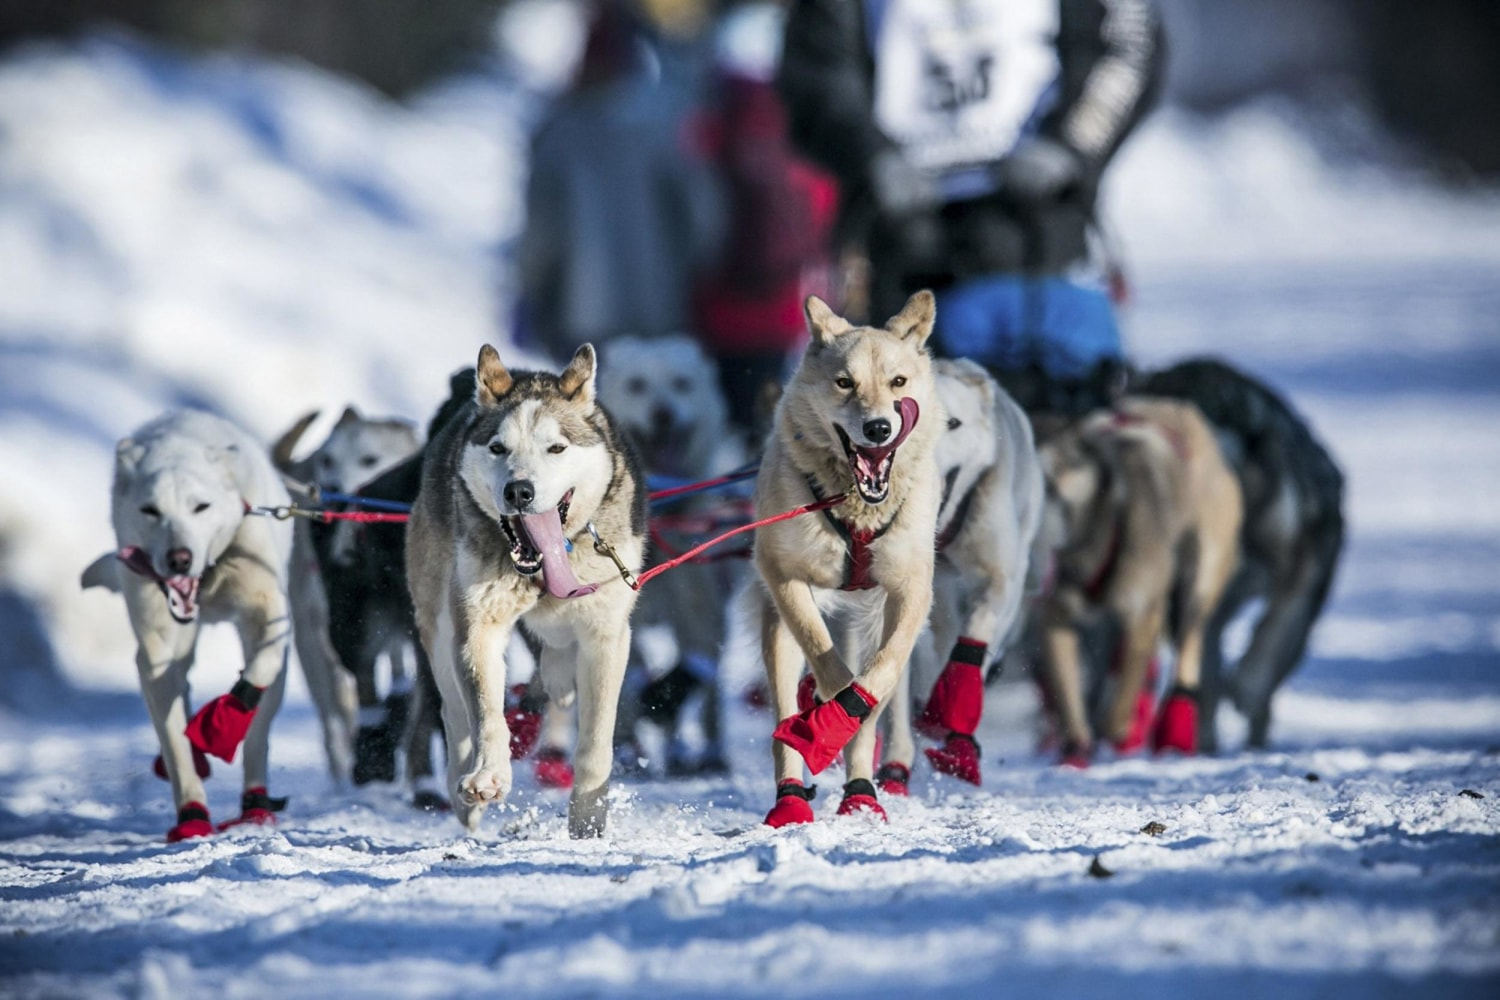 an overview of the dogsled race iditarod Mats pettersson's lead dogs wait at the start line during the ceremonial start of the iditarod dog sled race in anchorage, alaska, us march 3, 2018.